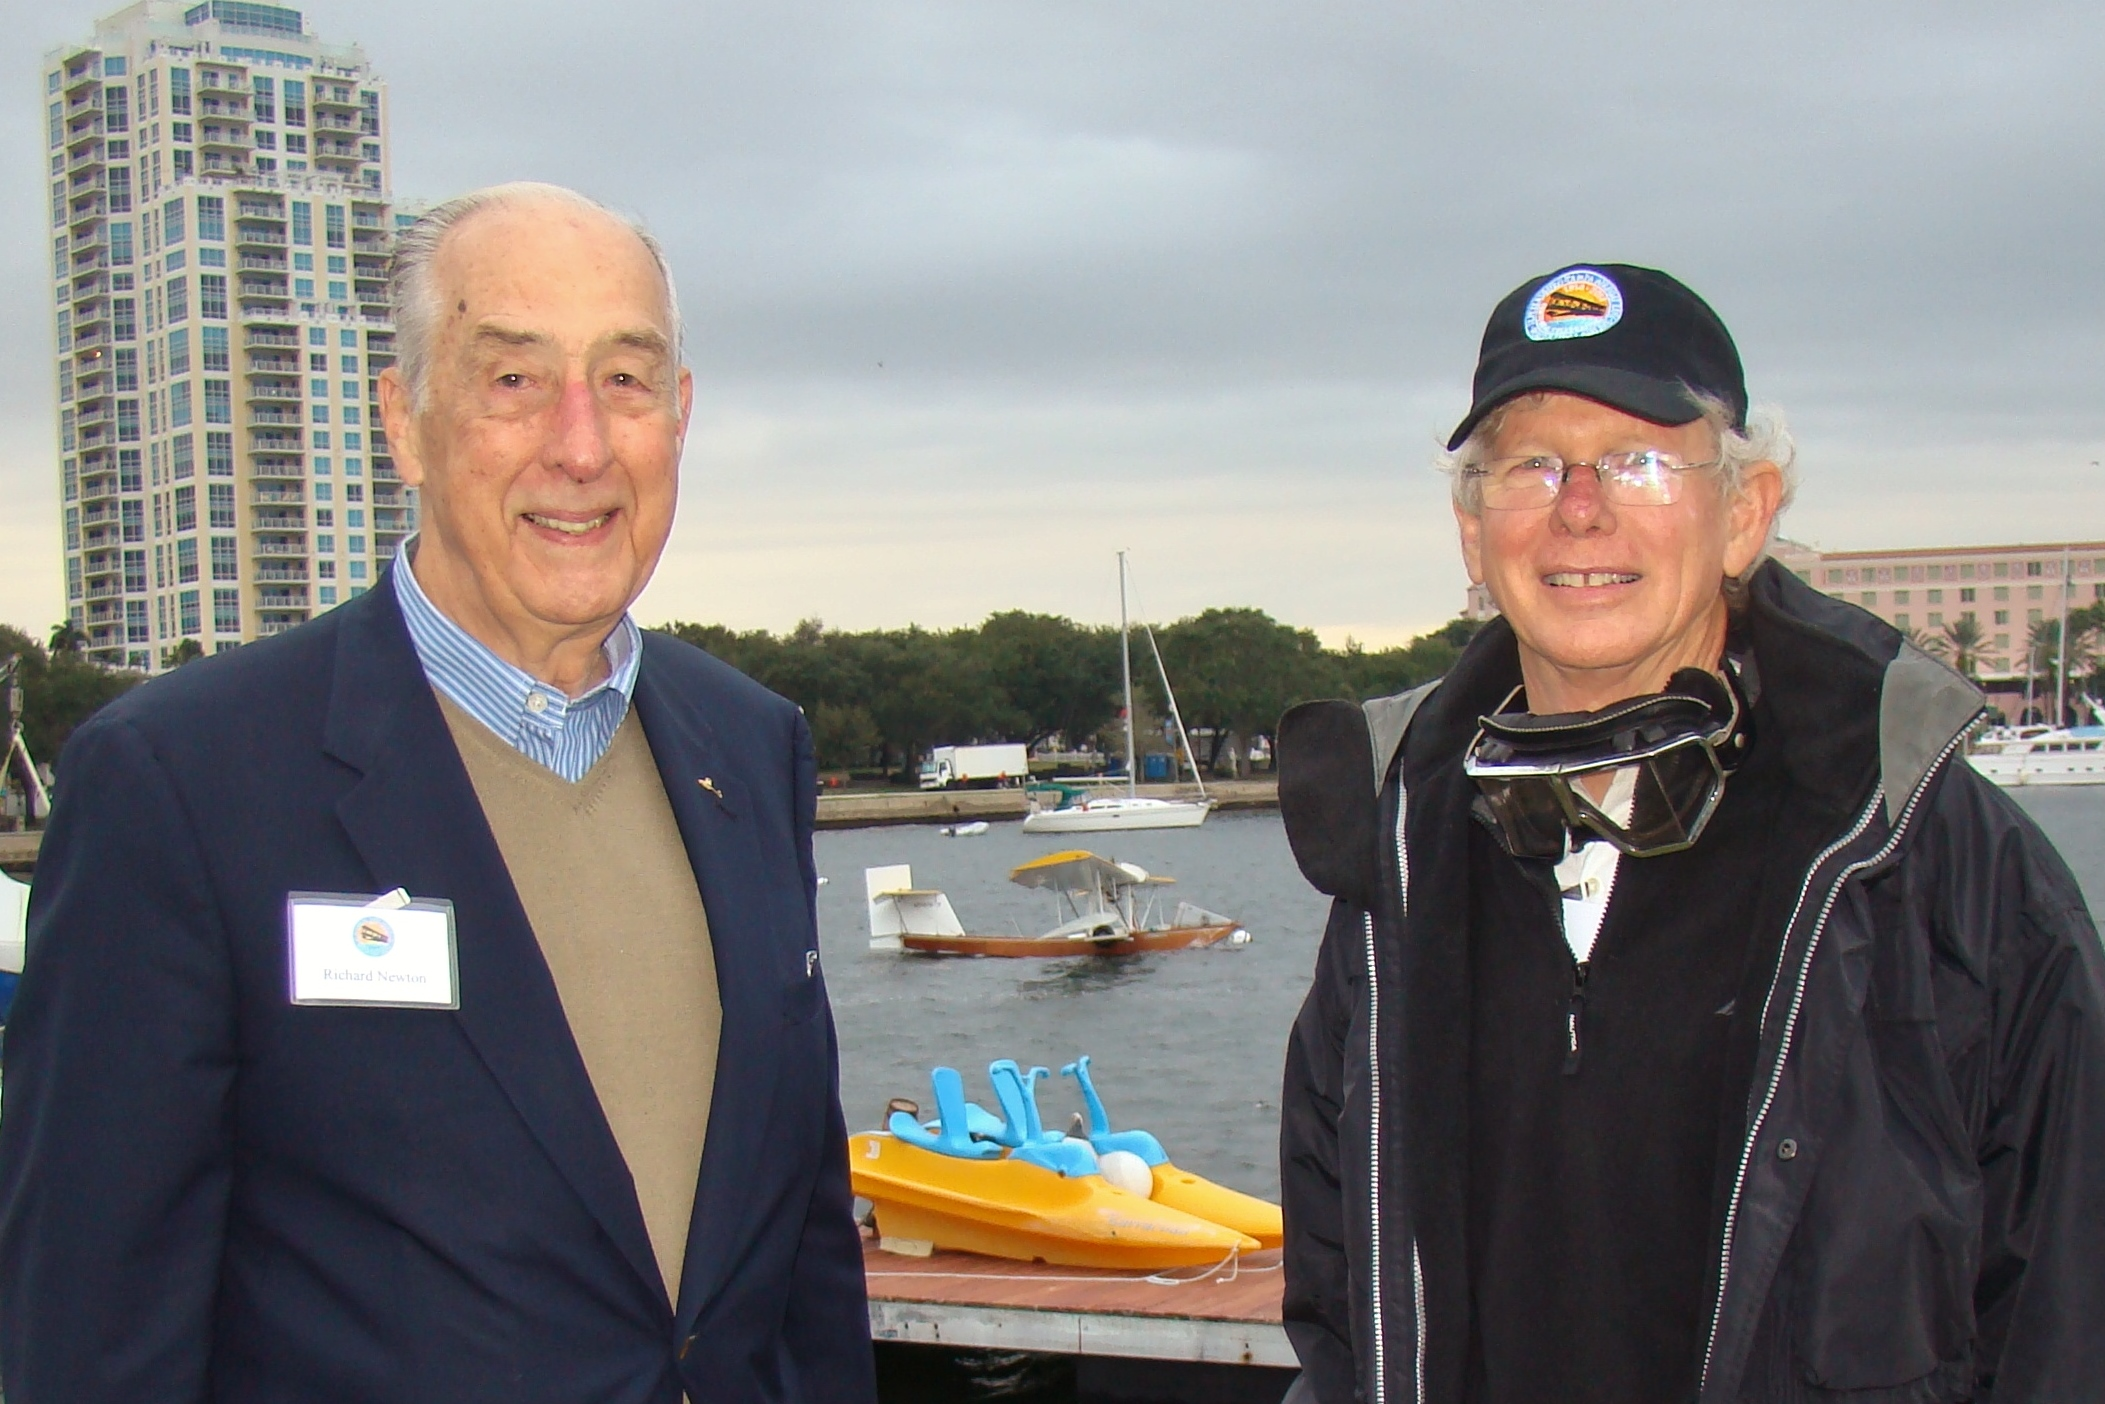 Dick Newton & Eddie Hoffman with Mullet Skiff, 1 Jan '14.JPG